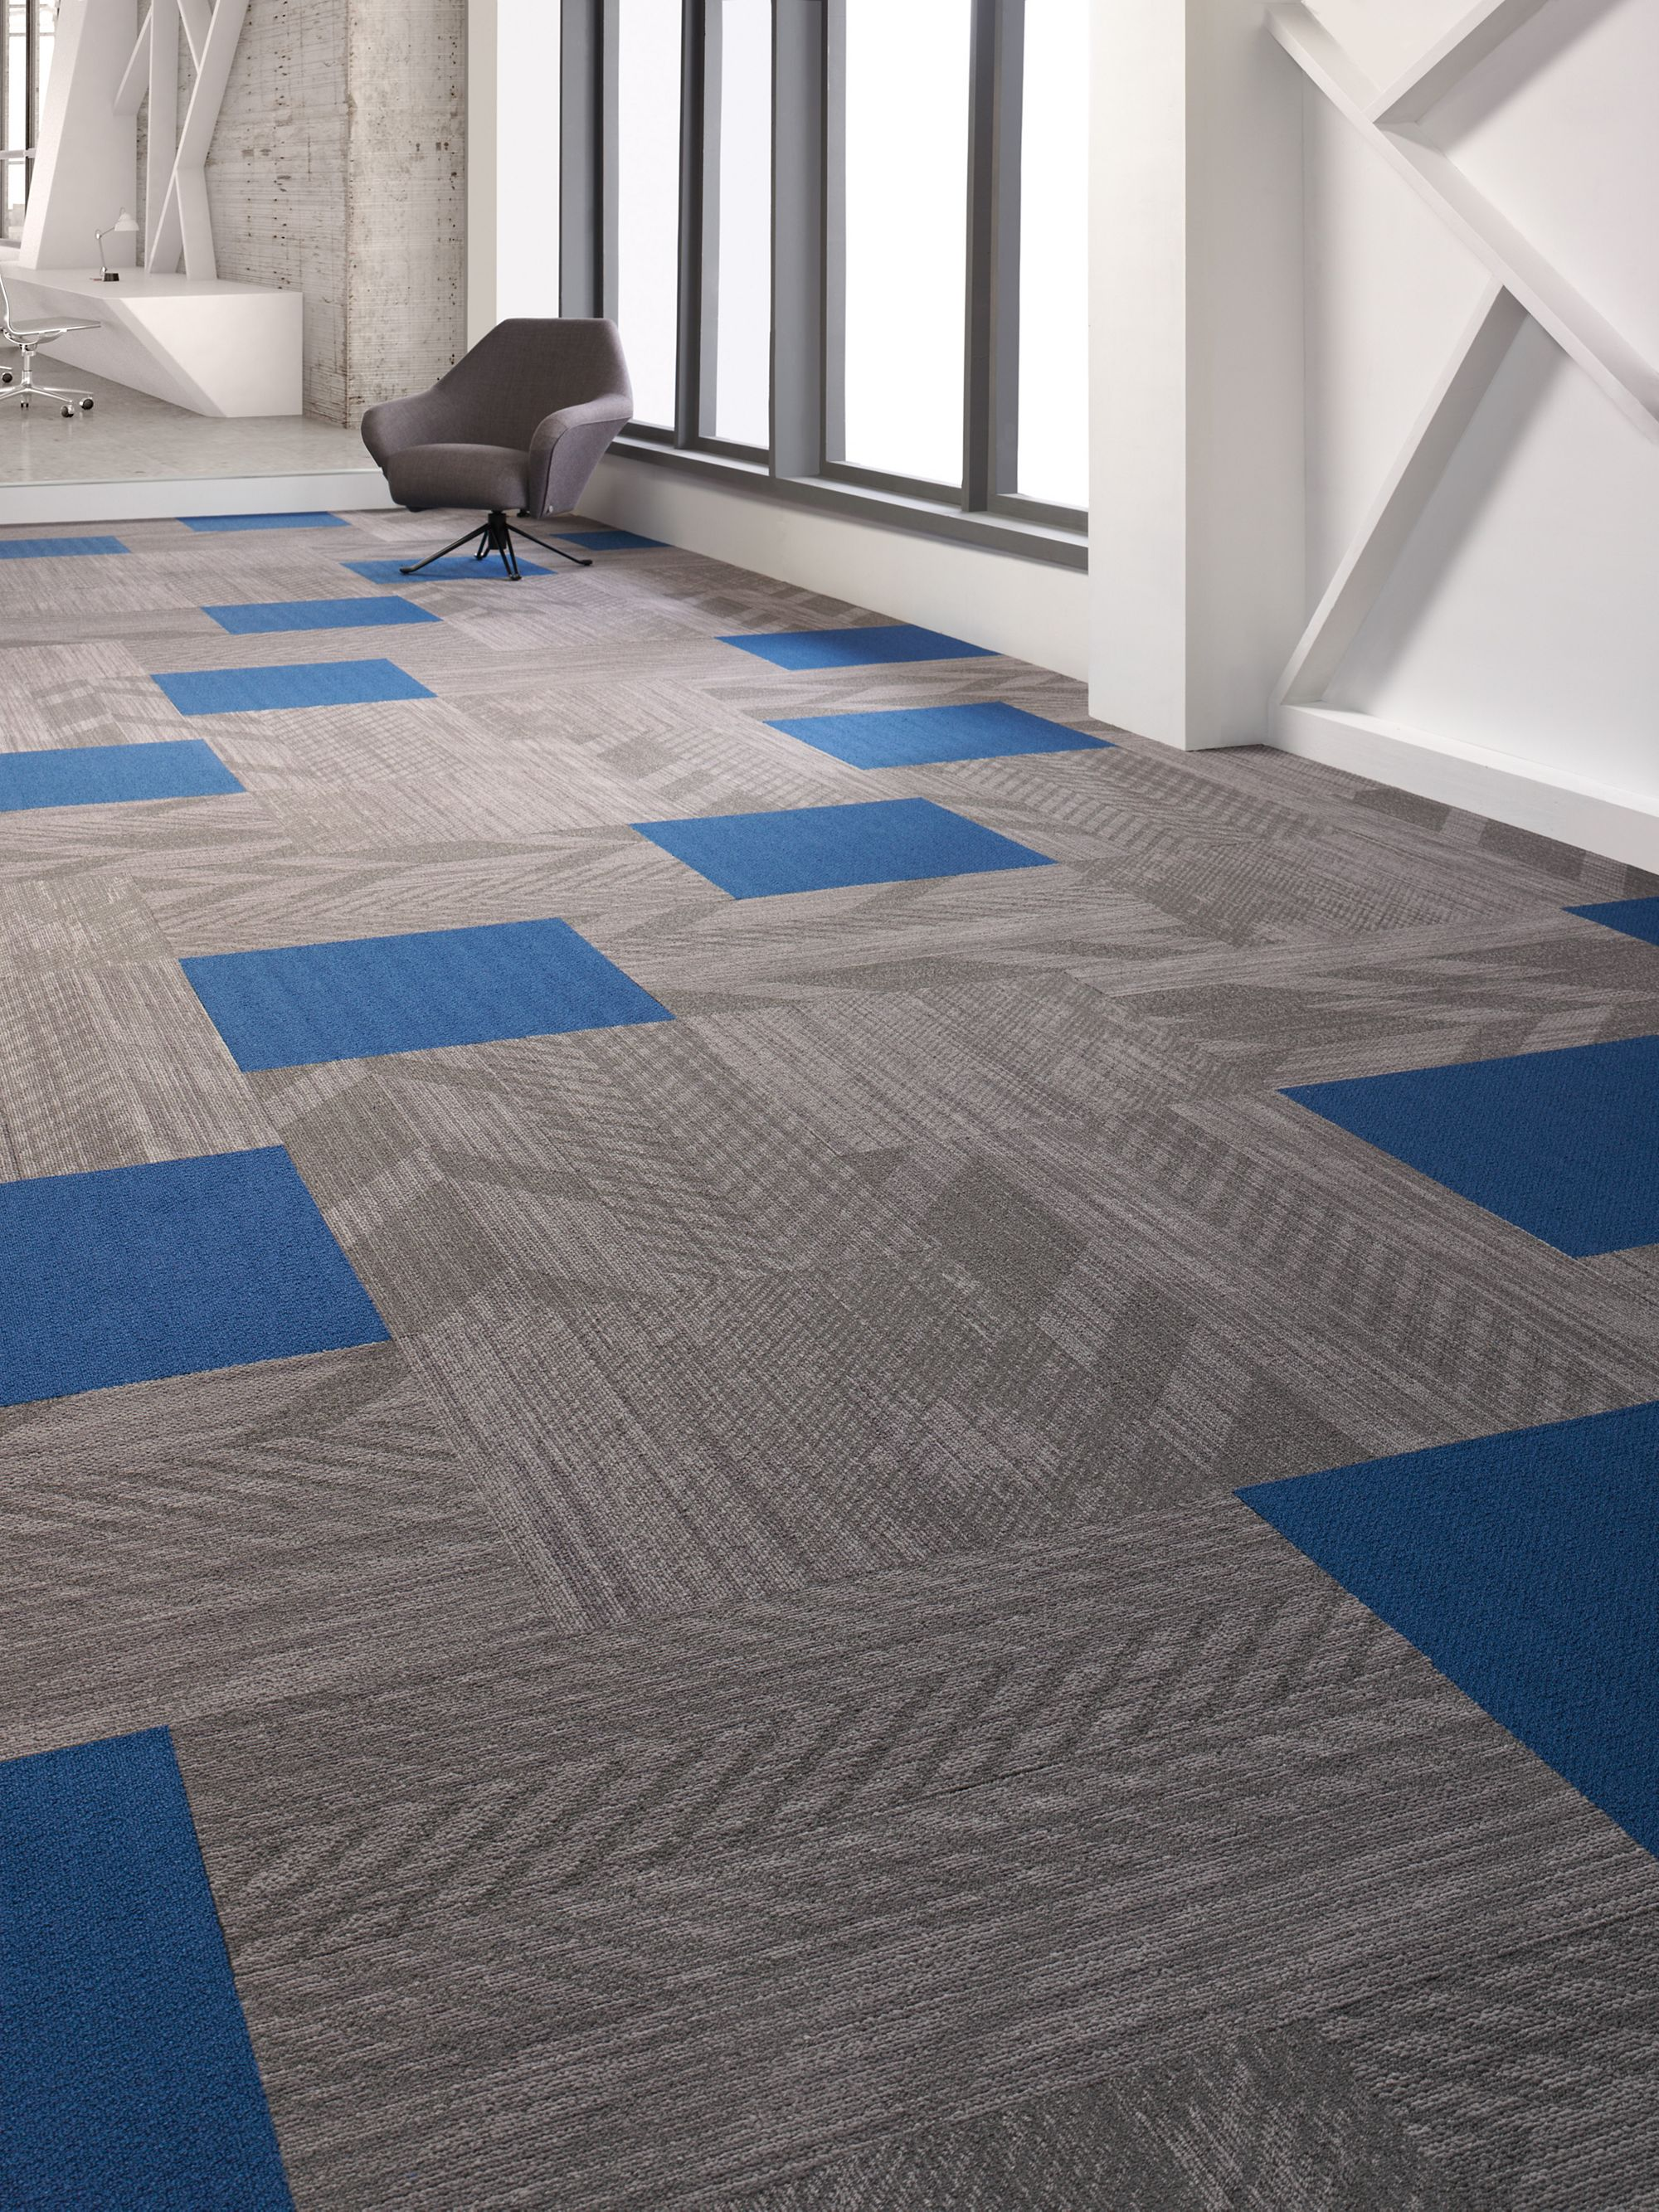 Carpet Tile Colorbeat Tile Tango Mohawk Group